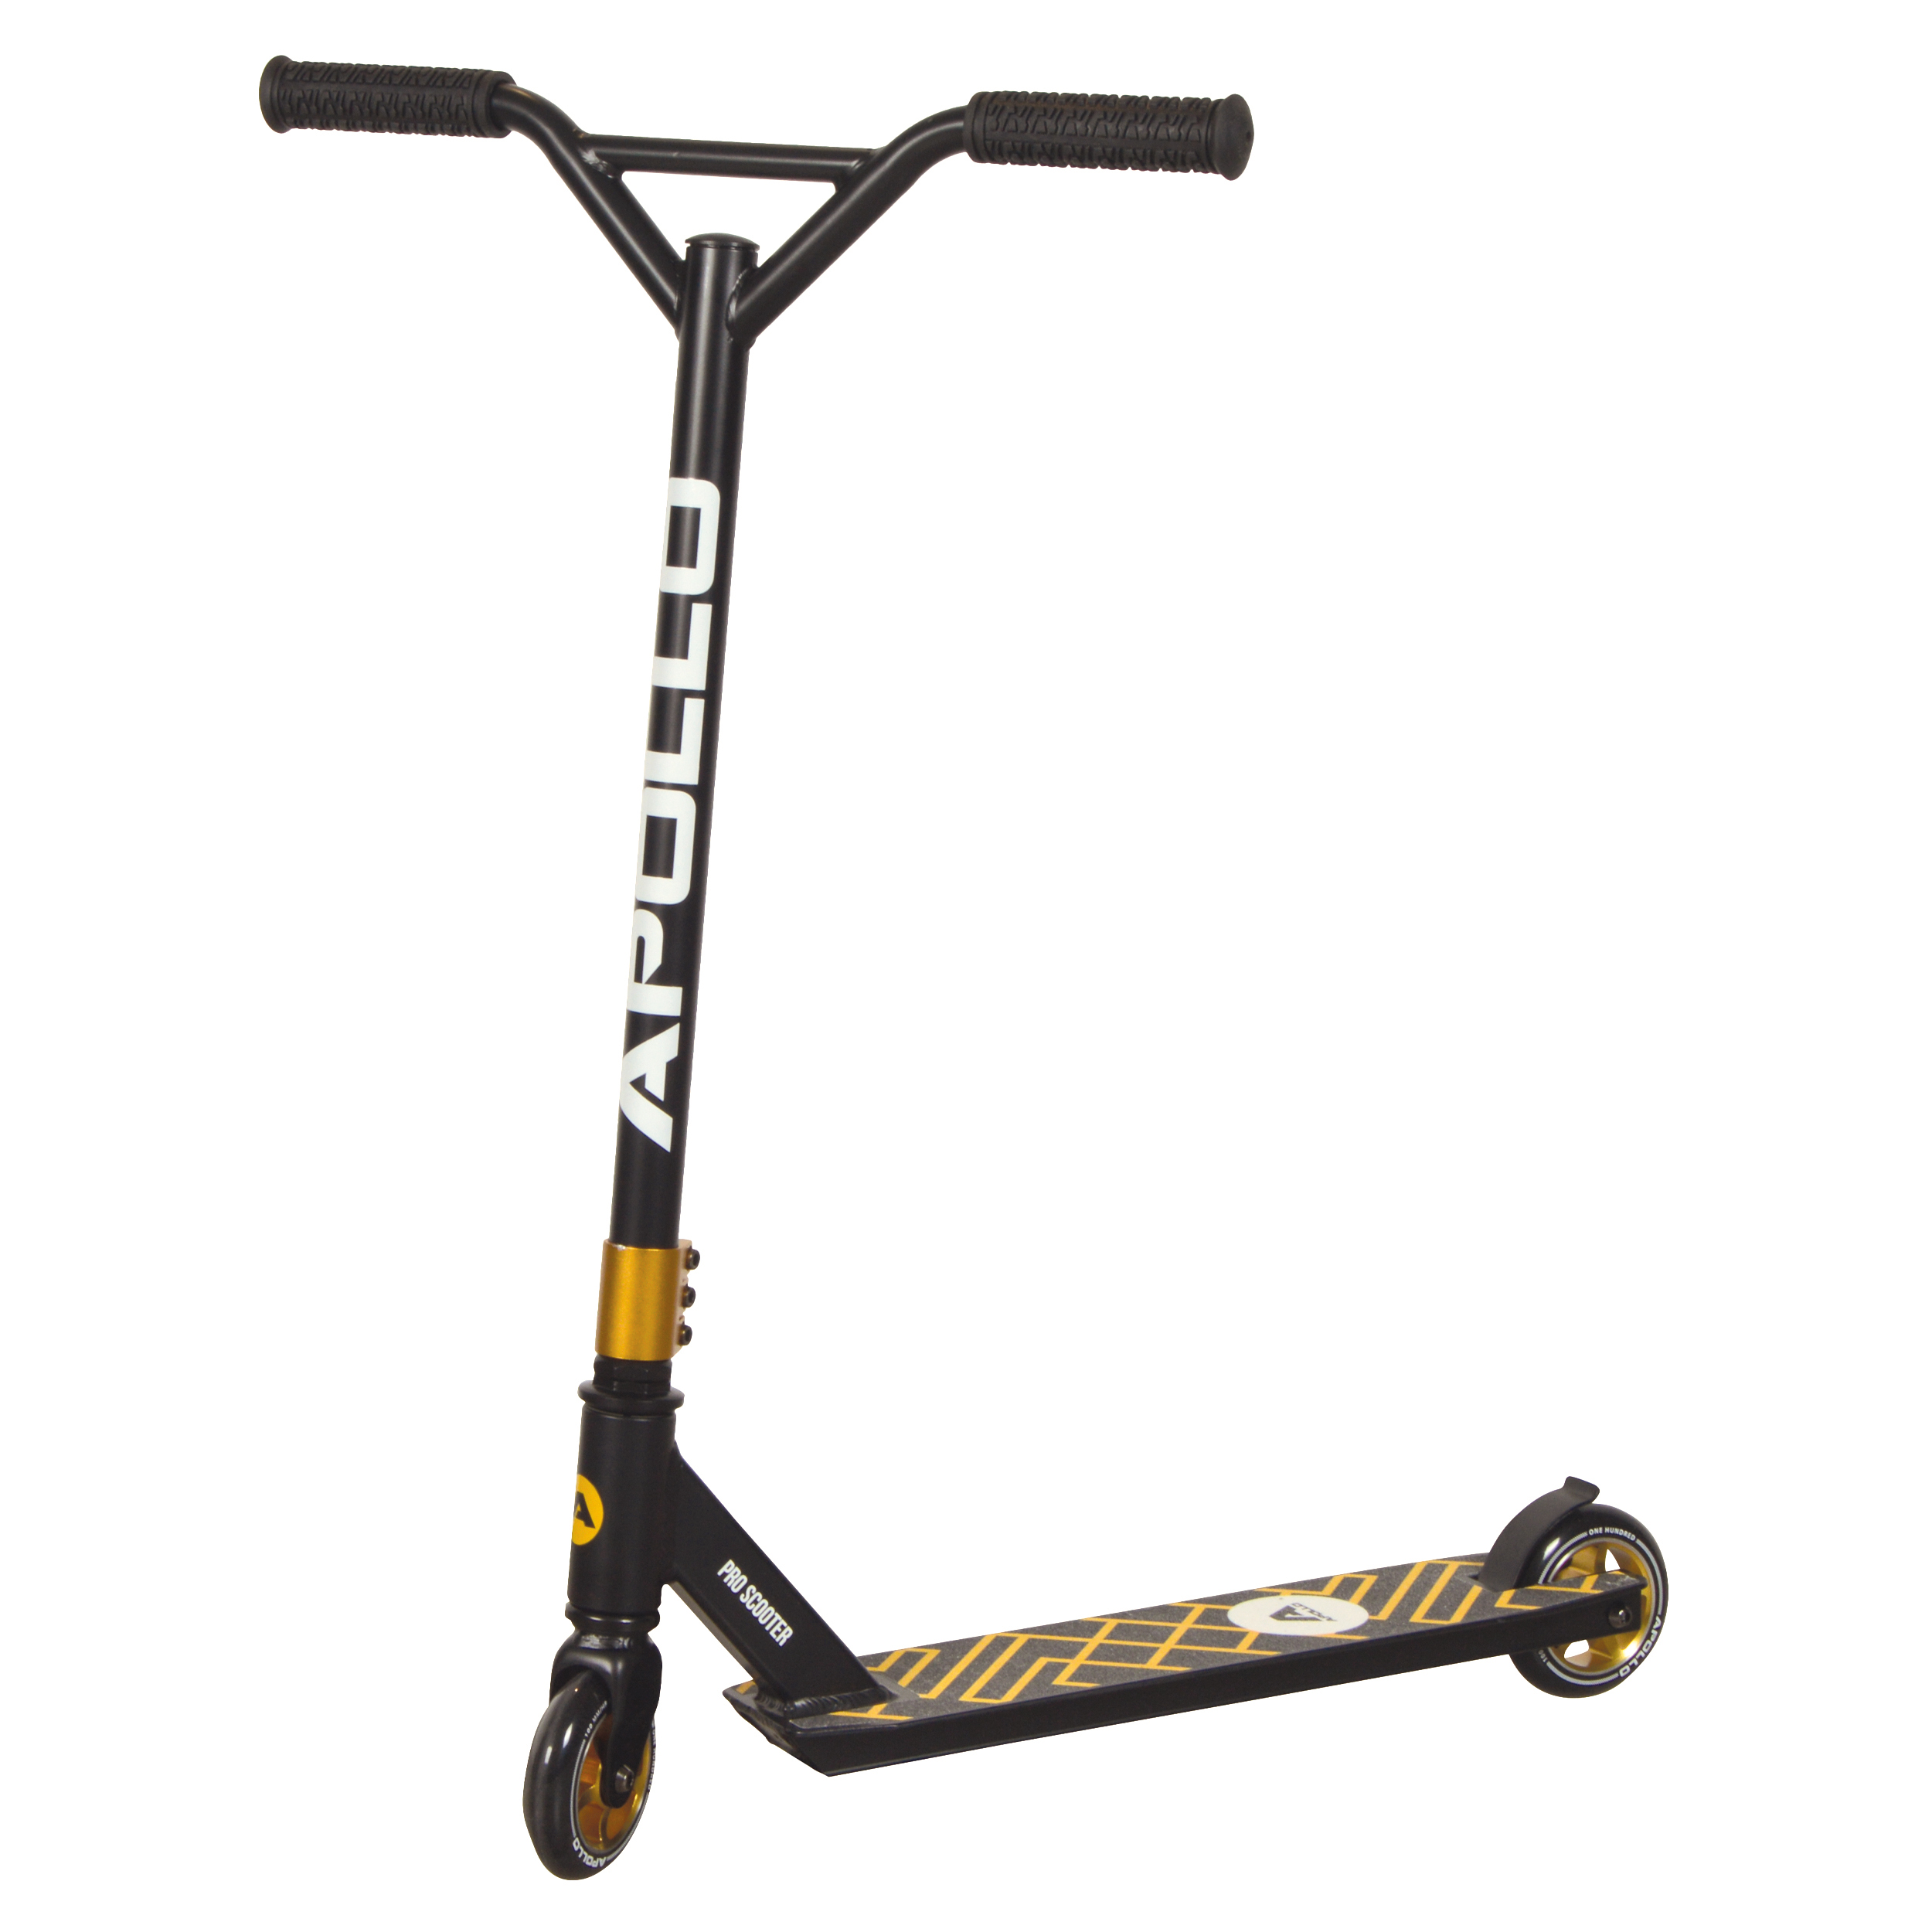 Apollo Stunt Scooter Genius Pro 4.0 - Schwarz/Gold